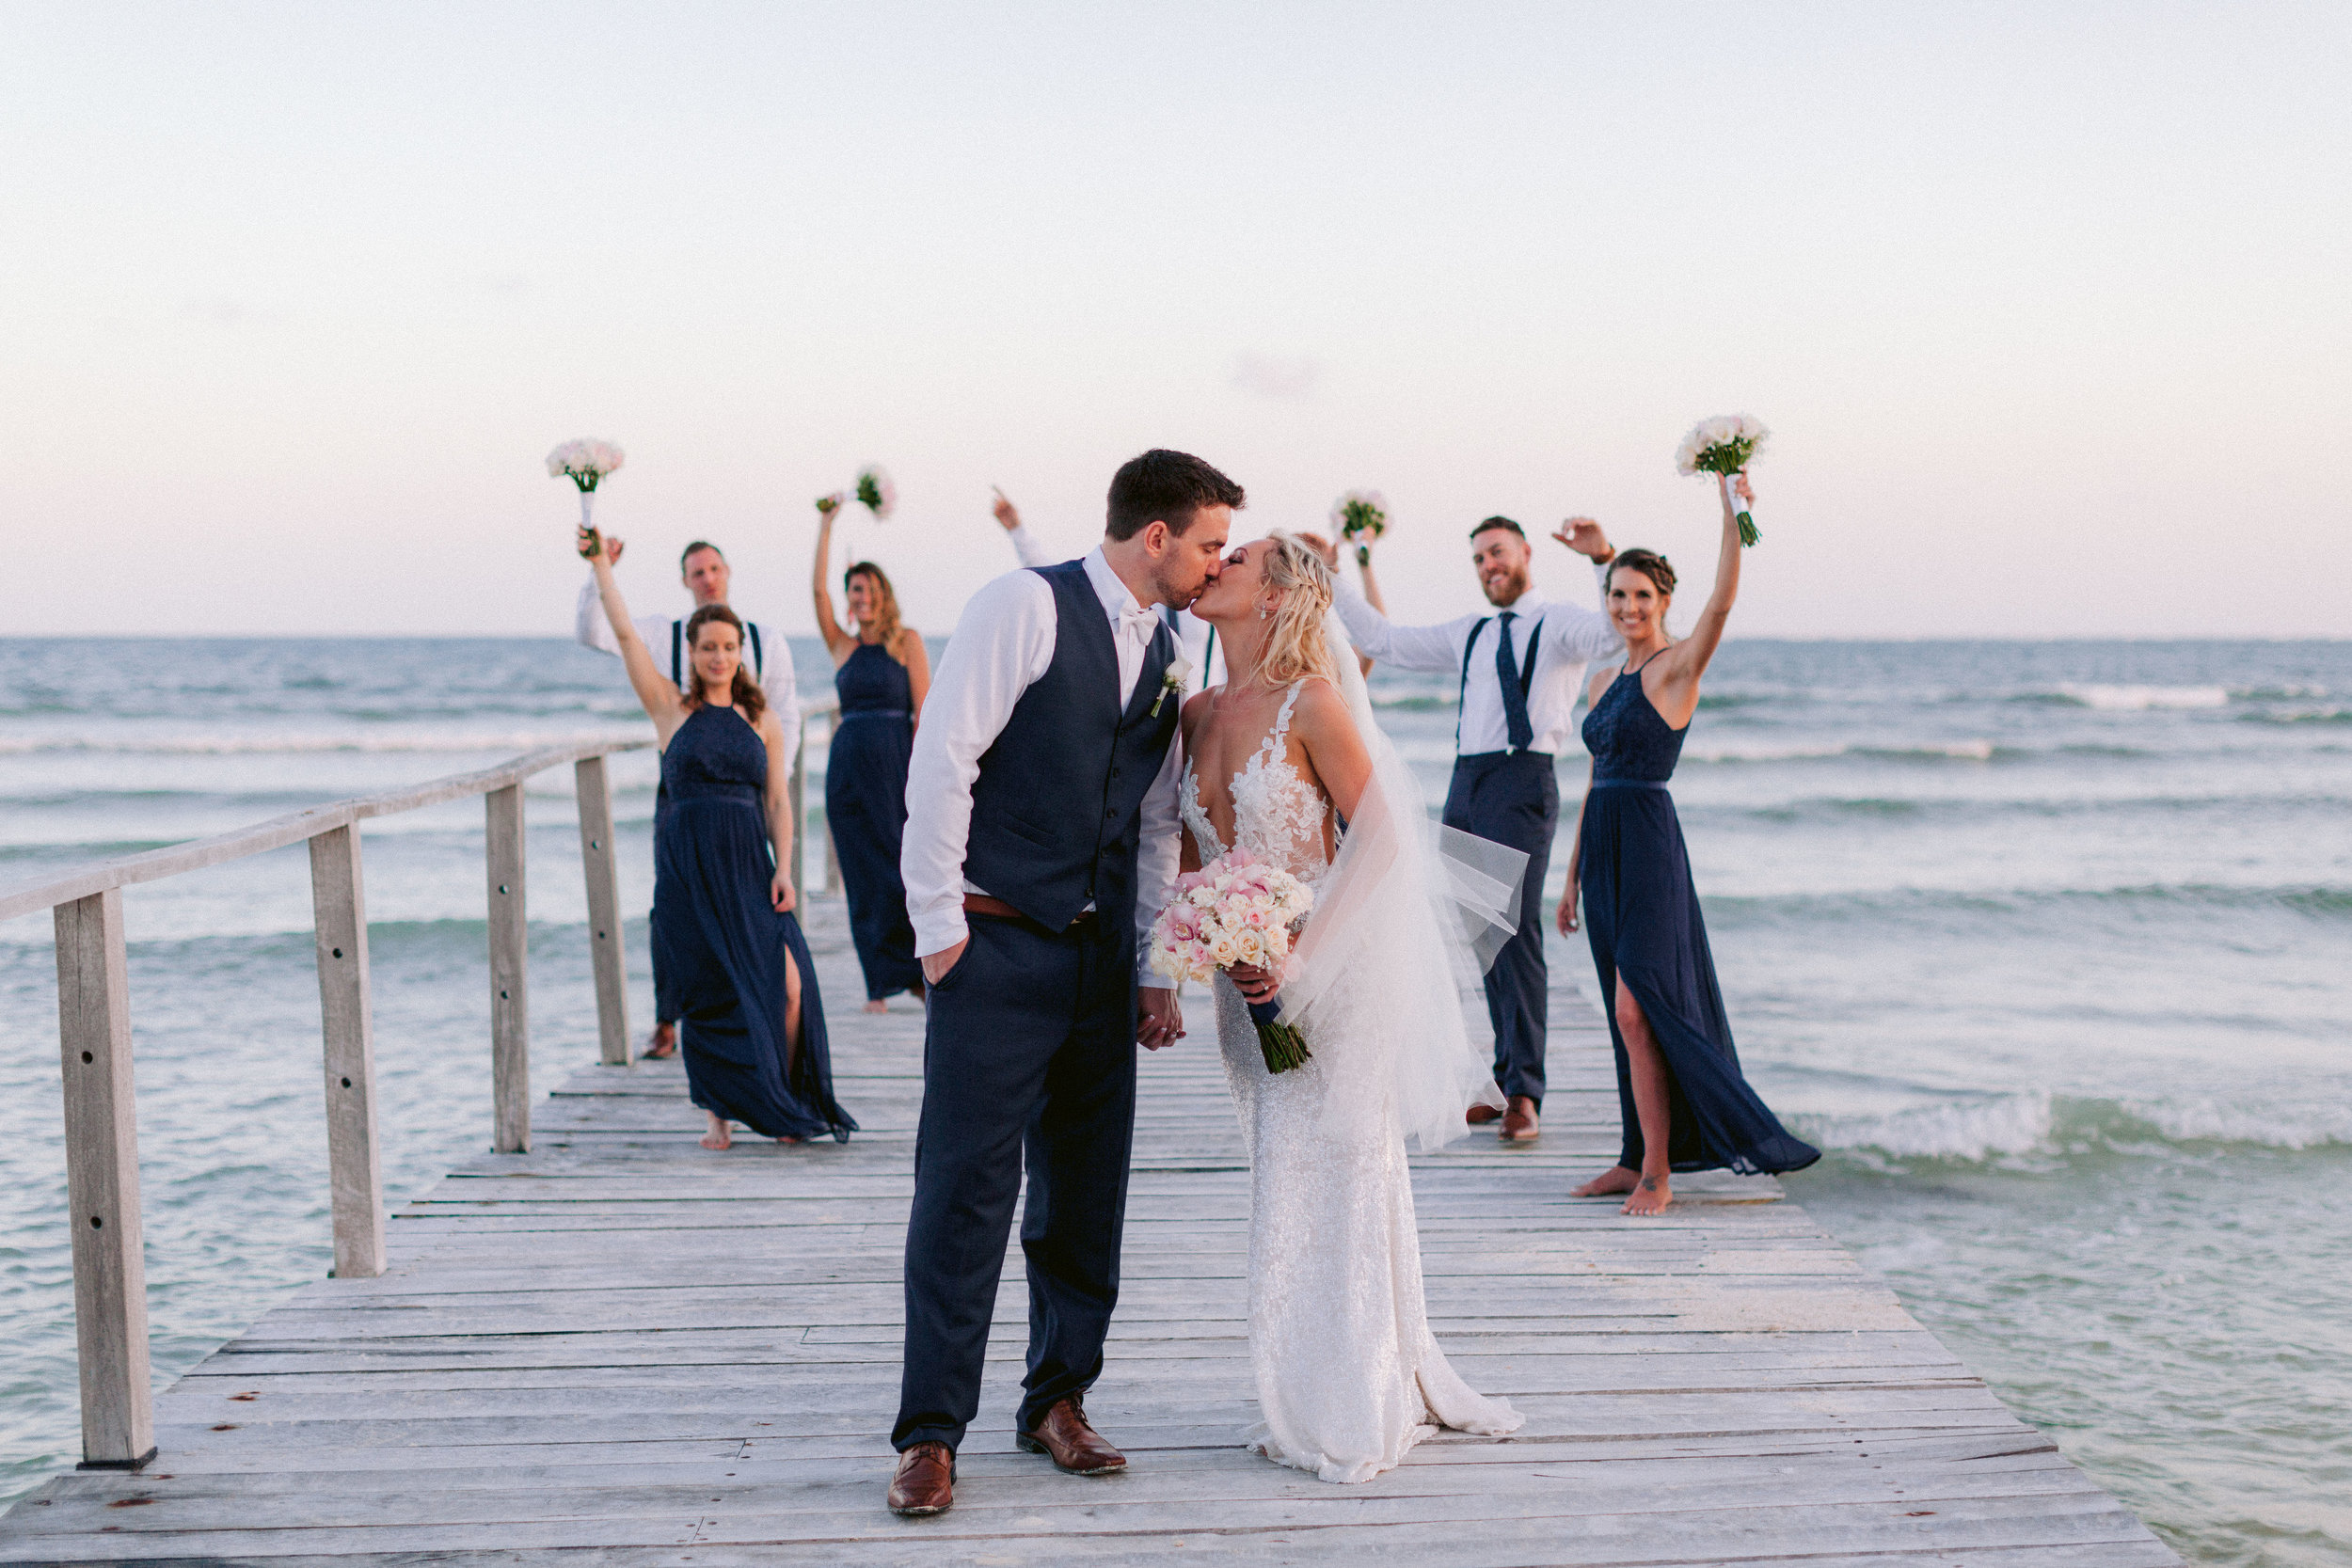 Kim_Jeff_Cancun Wedding_Portraits_Kurtz_Orpia (147 of 178).jpg